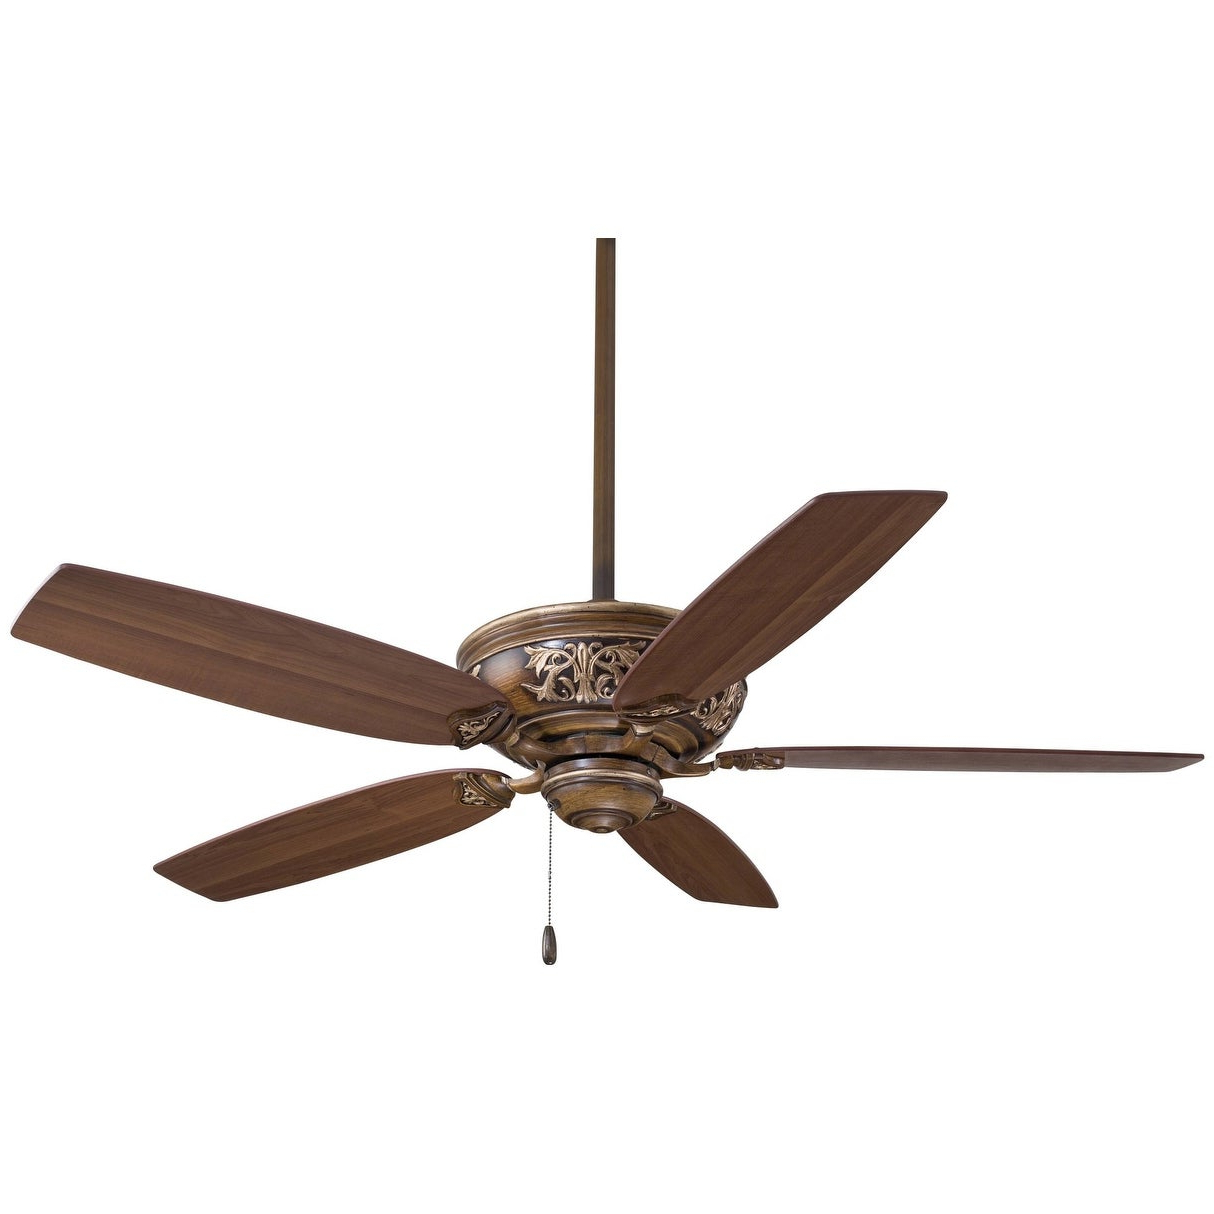 Most Recent Minkaaire Classica 54In 5 Blade Energy Star Indoor Ceiling Fan With Blades Included Within Classica 5 Blade Ceiling Fans (View 6 of 20)